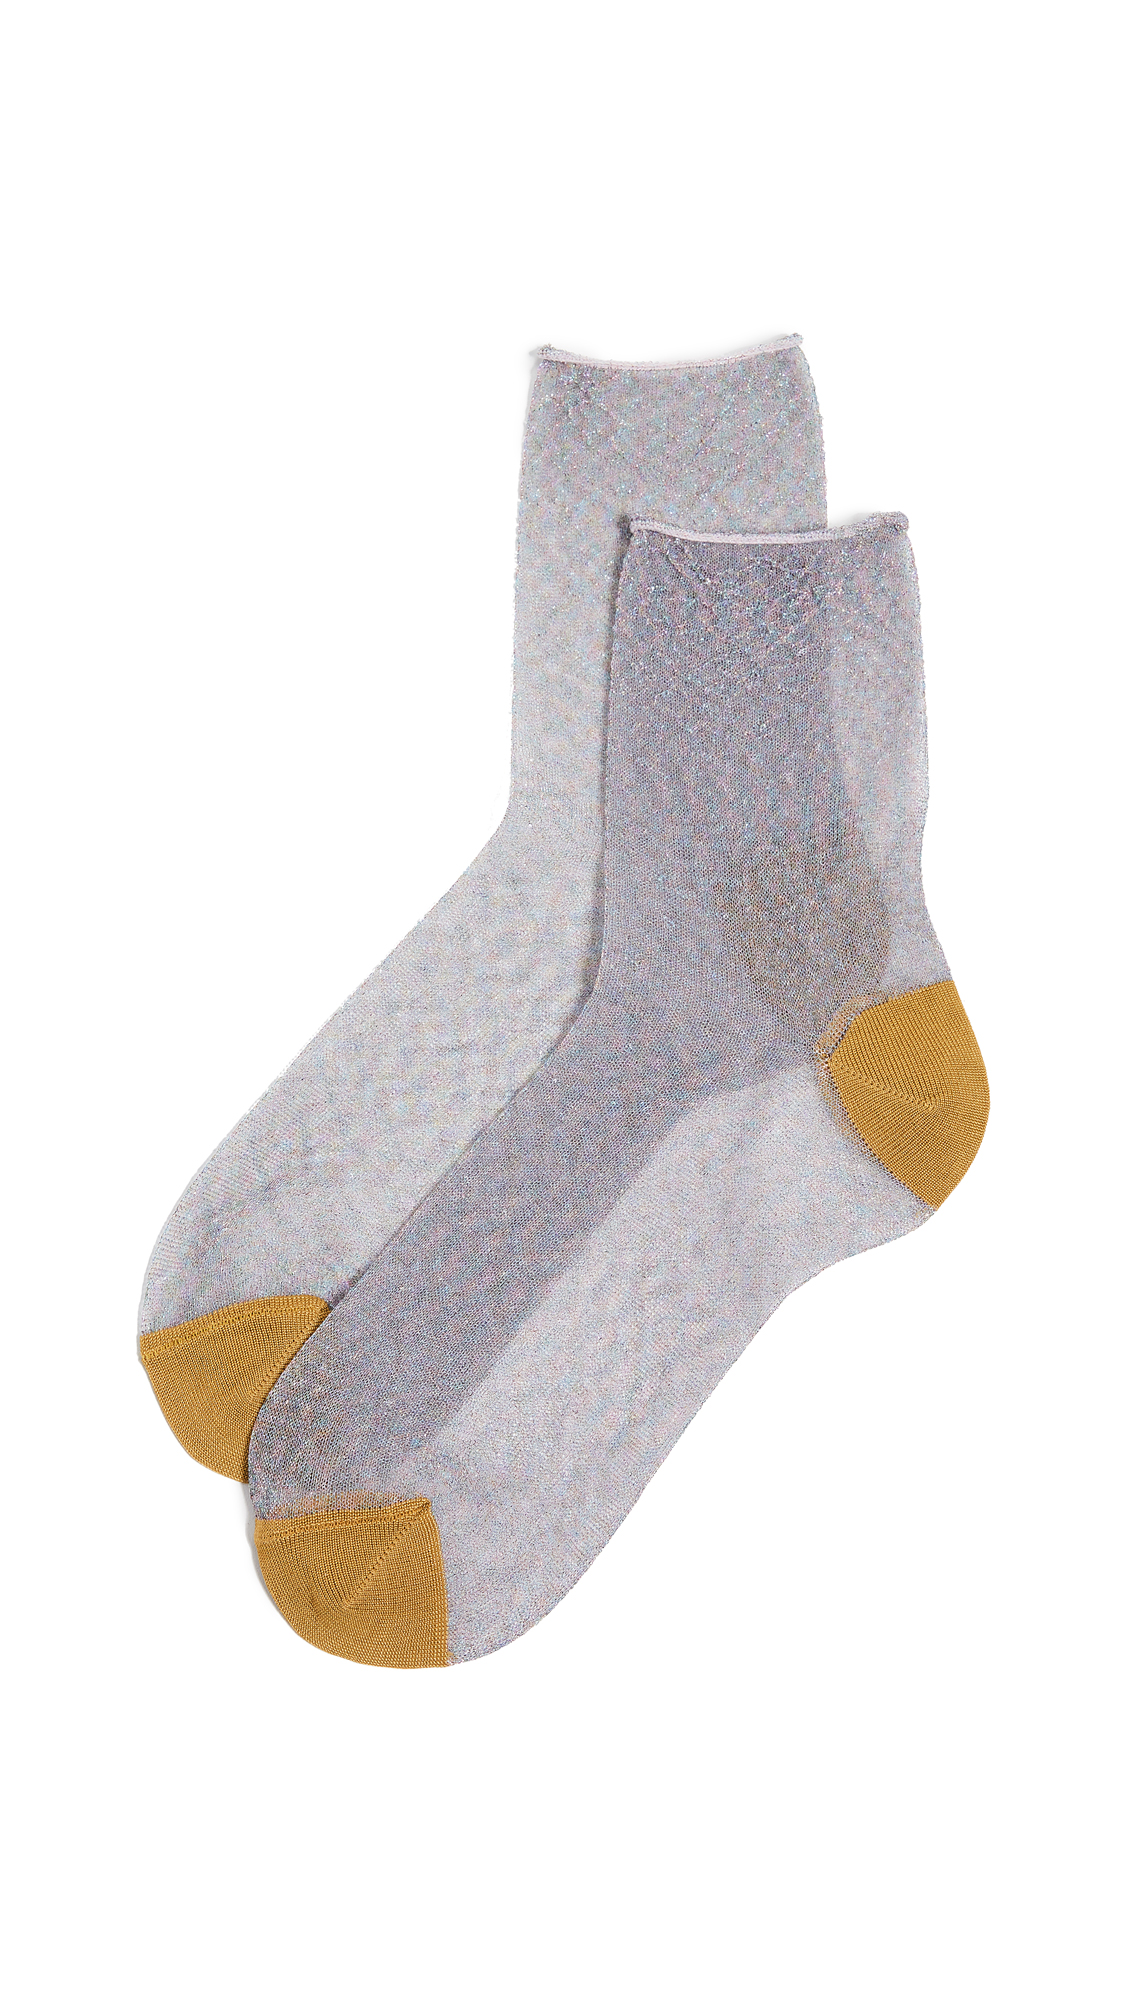 HYSTERIA Emma Ankle Socks in Clear